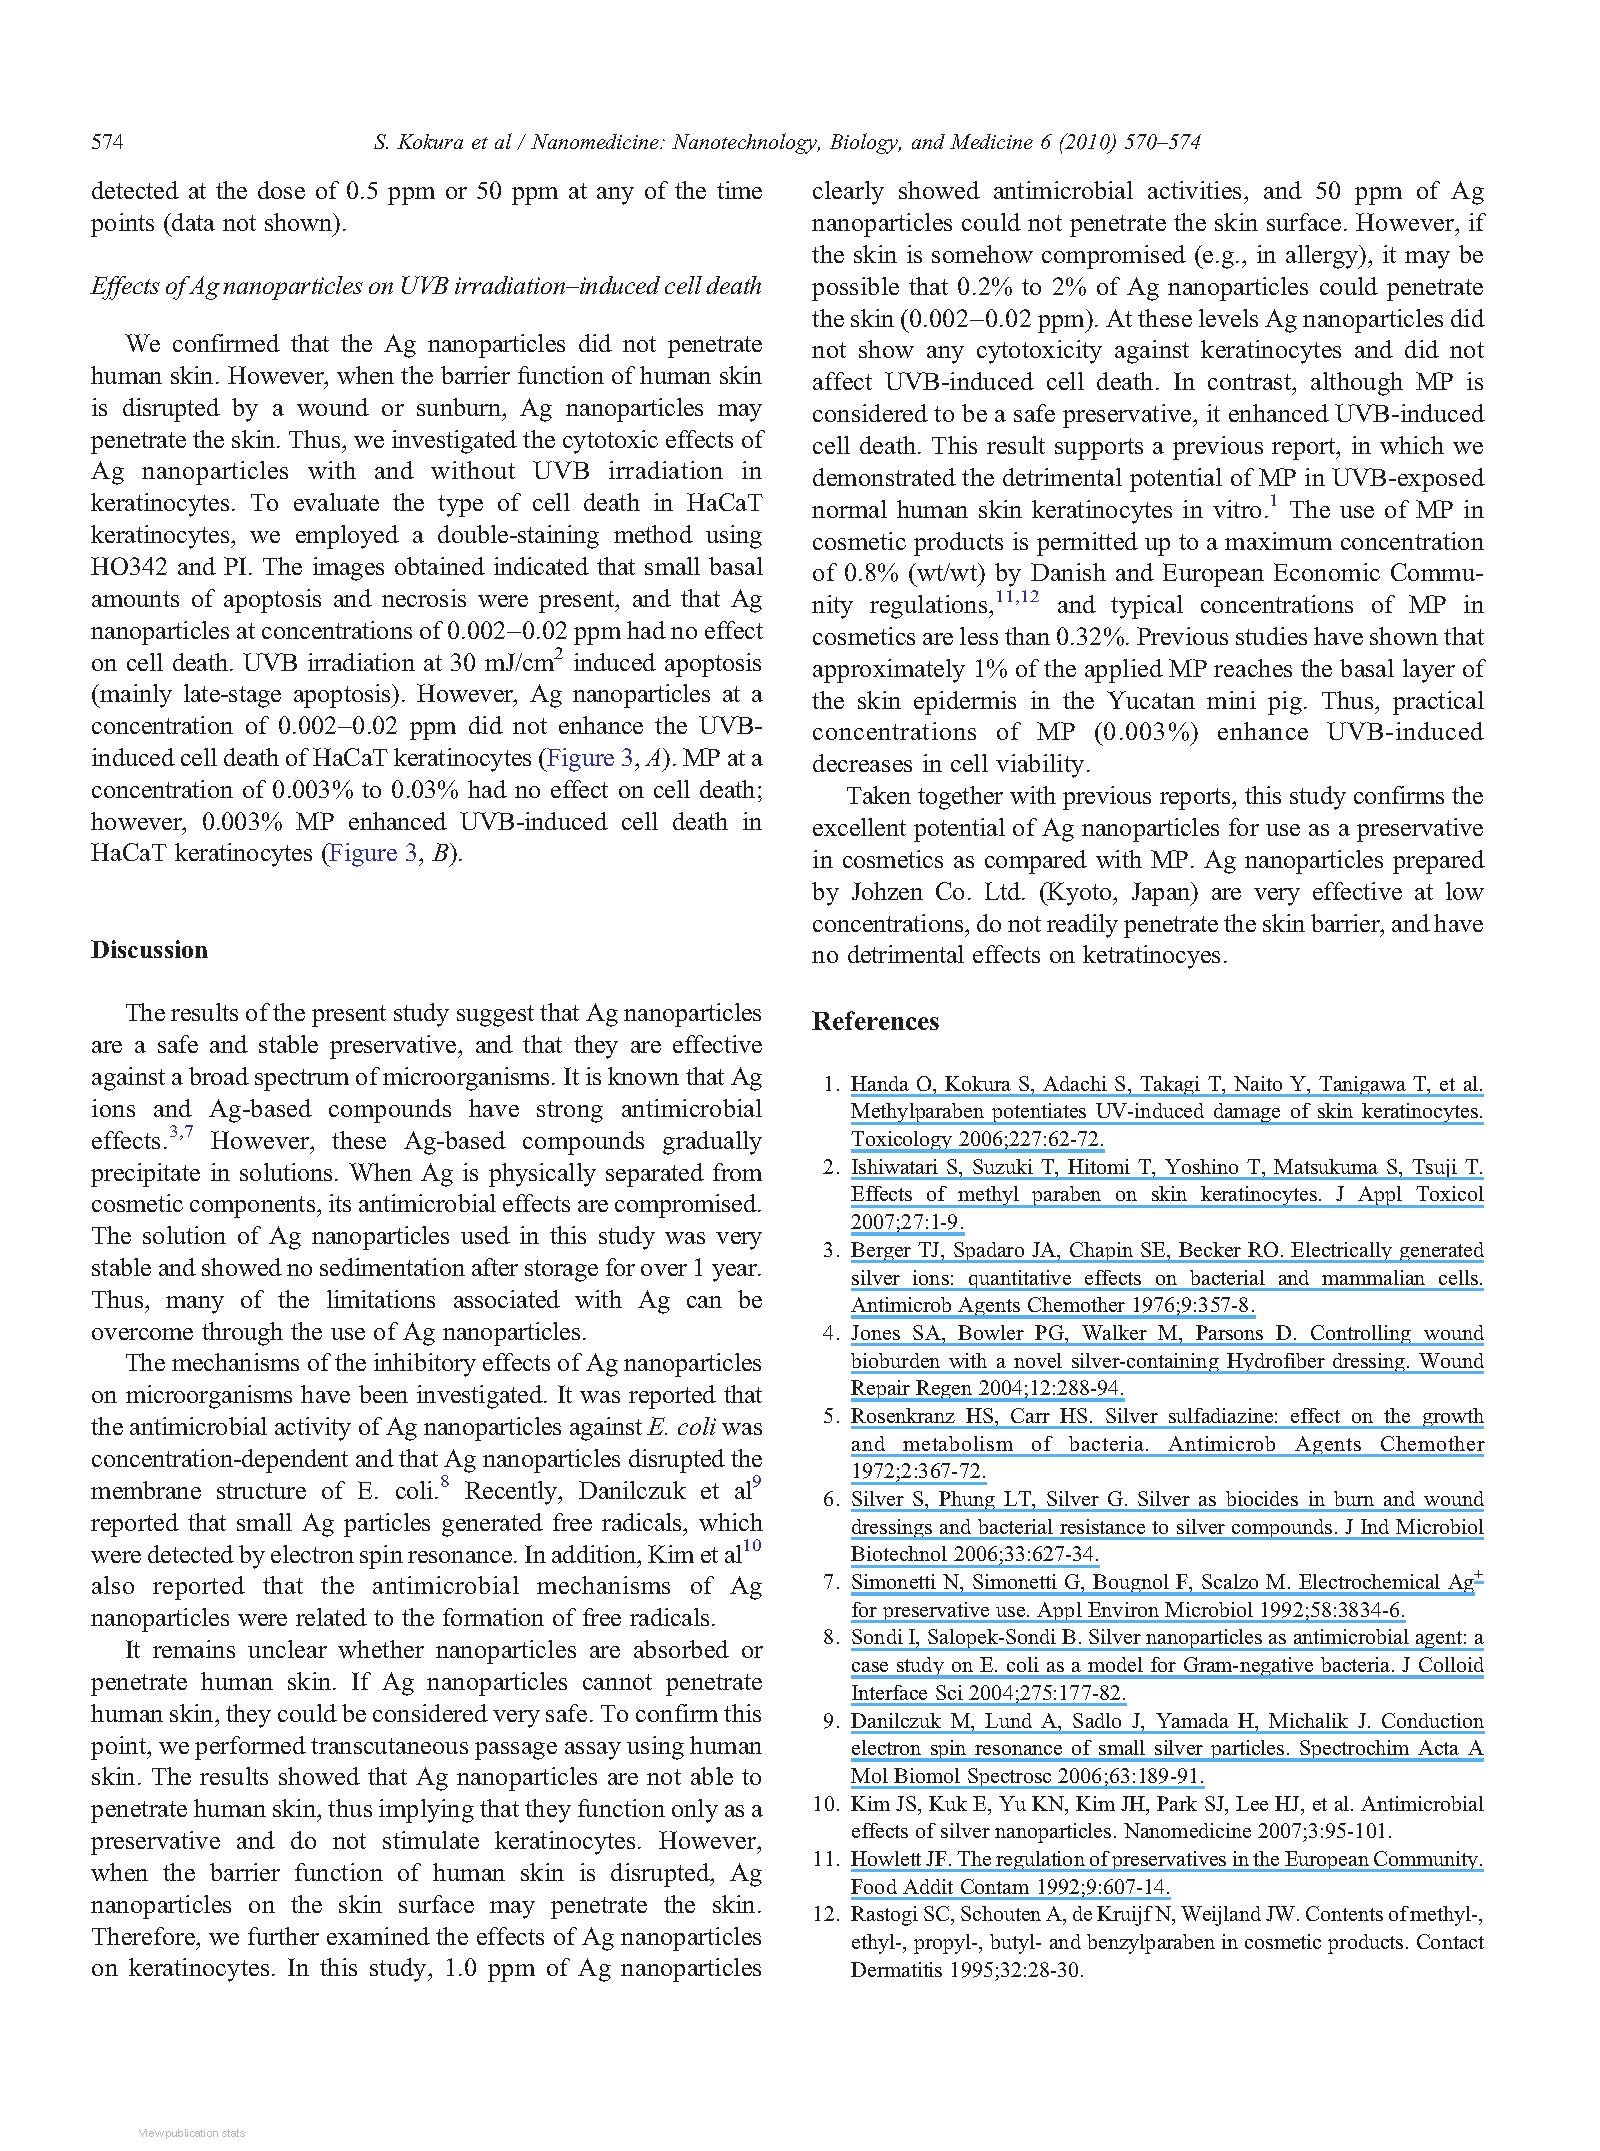 Silver nanoparticles as a safe preservative for use in cosmetics page 5